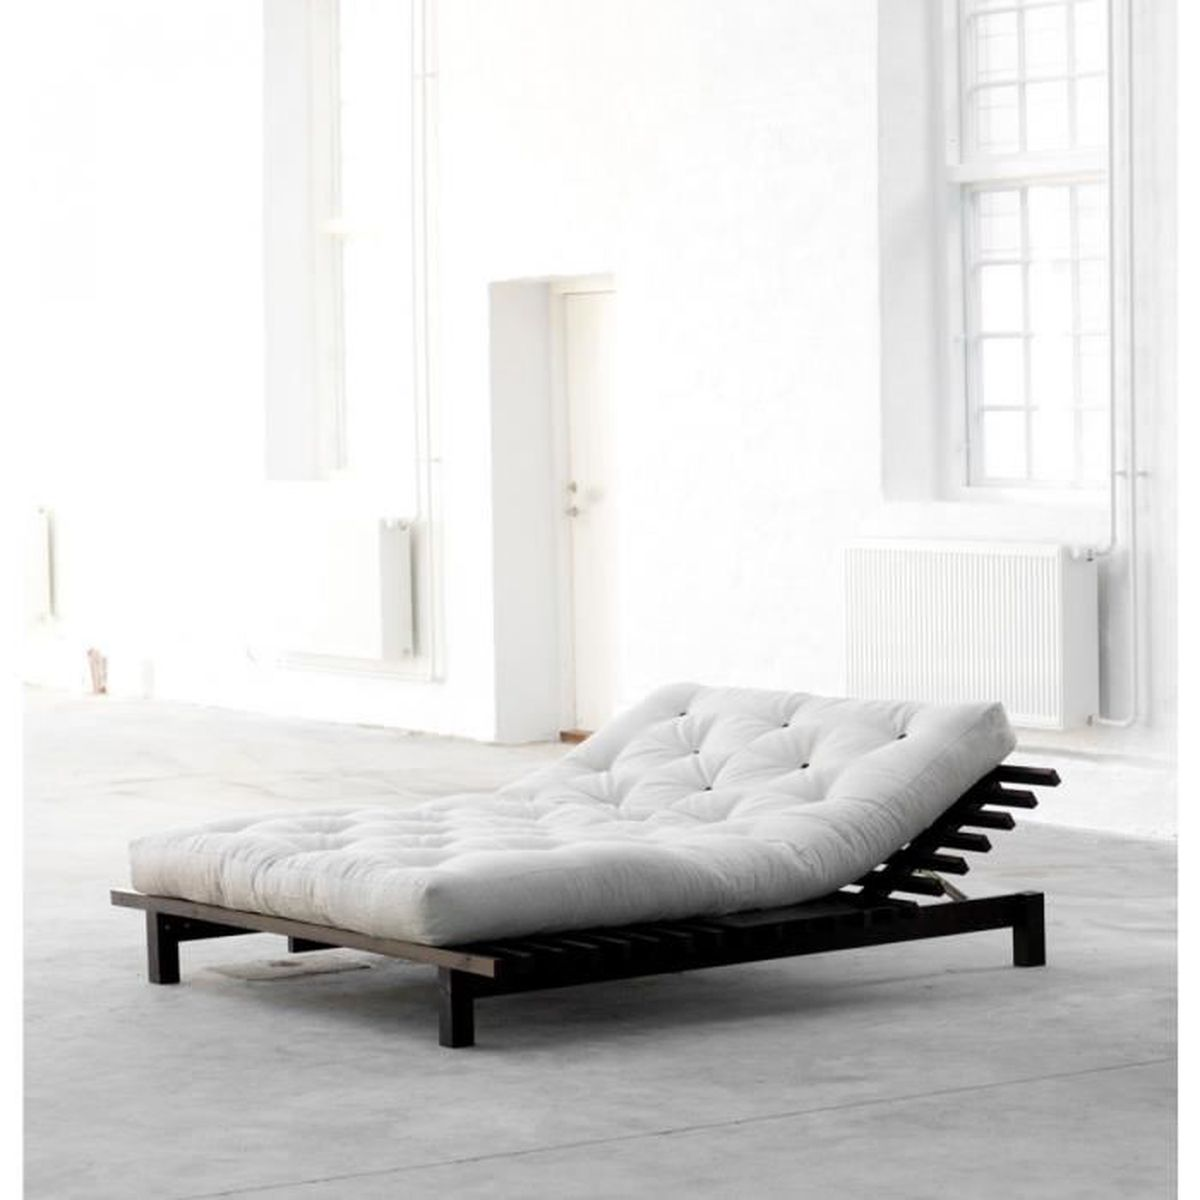 lit futon blues en bois weng 140x200 terre de nuit. Black Bedroom Furniture Sets. Home Design Ideas